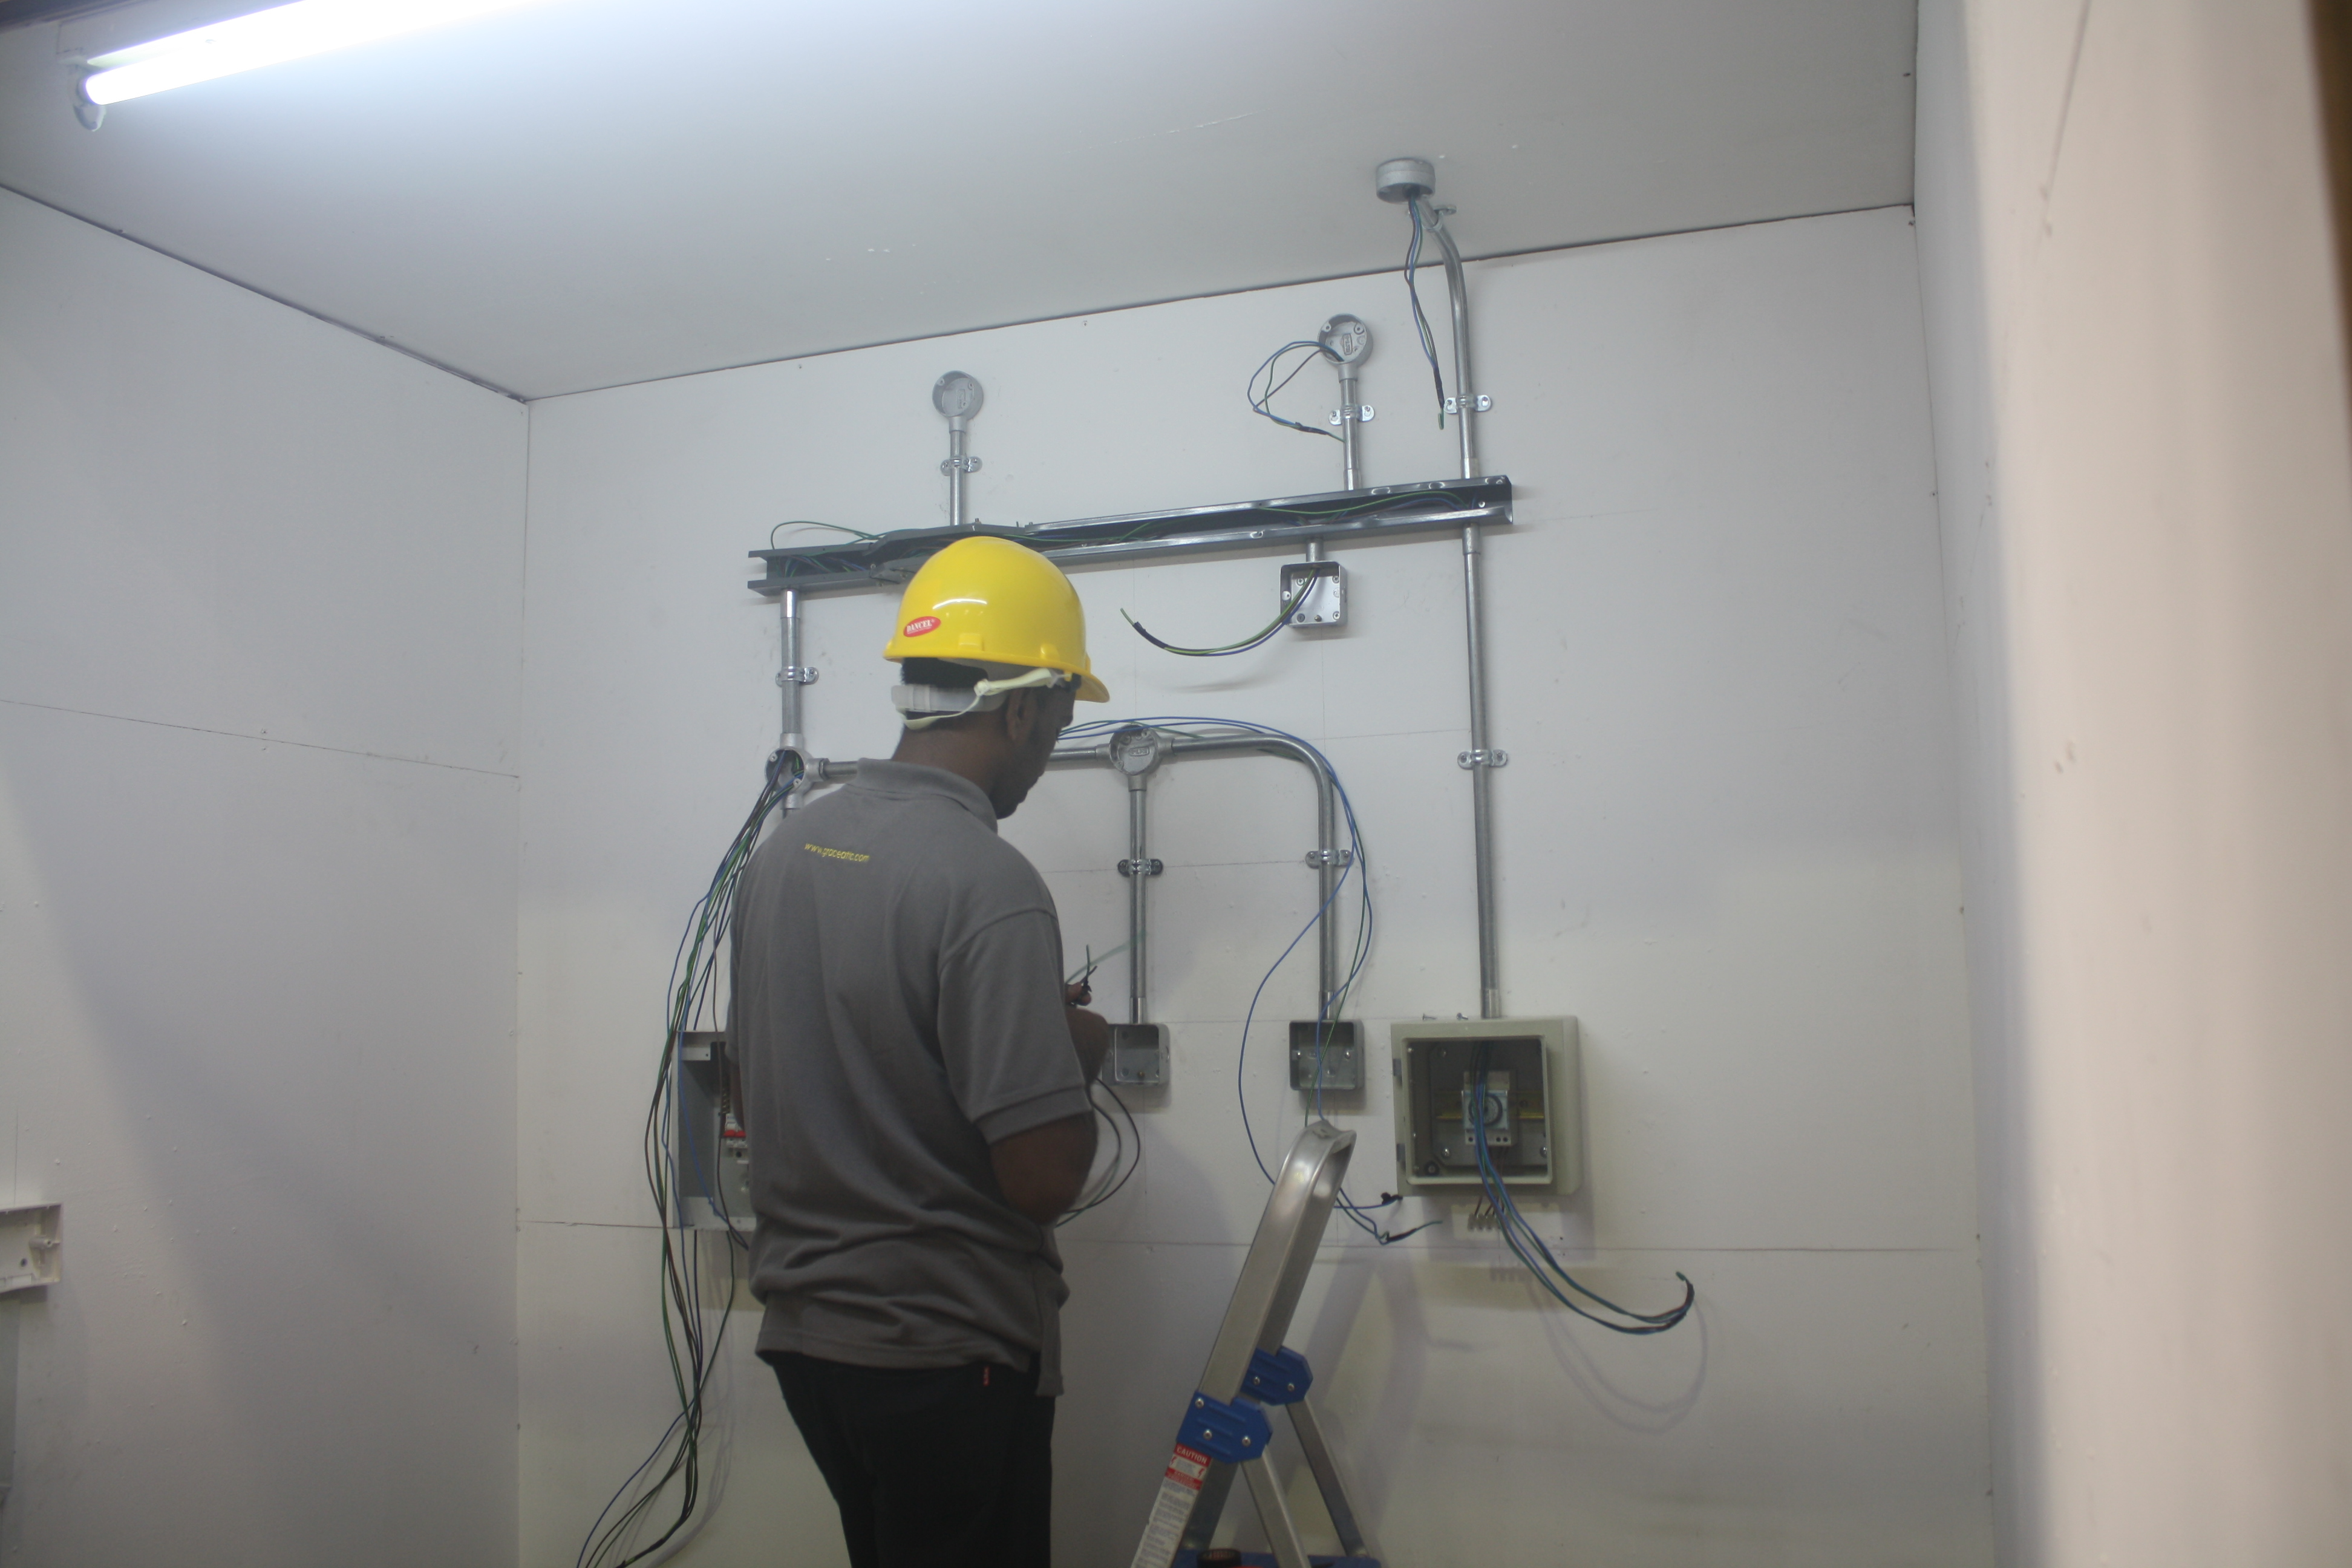 Gallery Archive Grace Electrical Engineering Wiring Courses